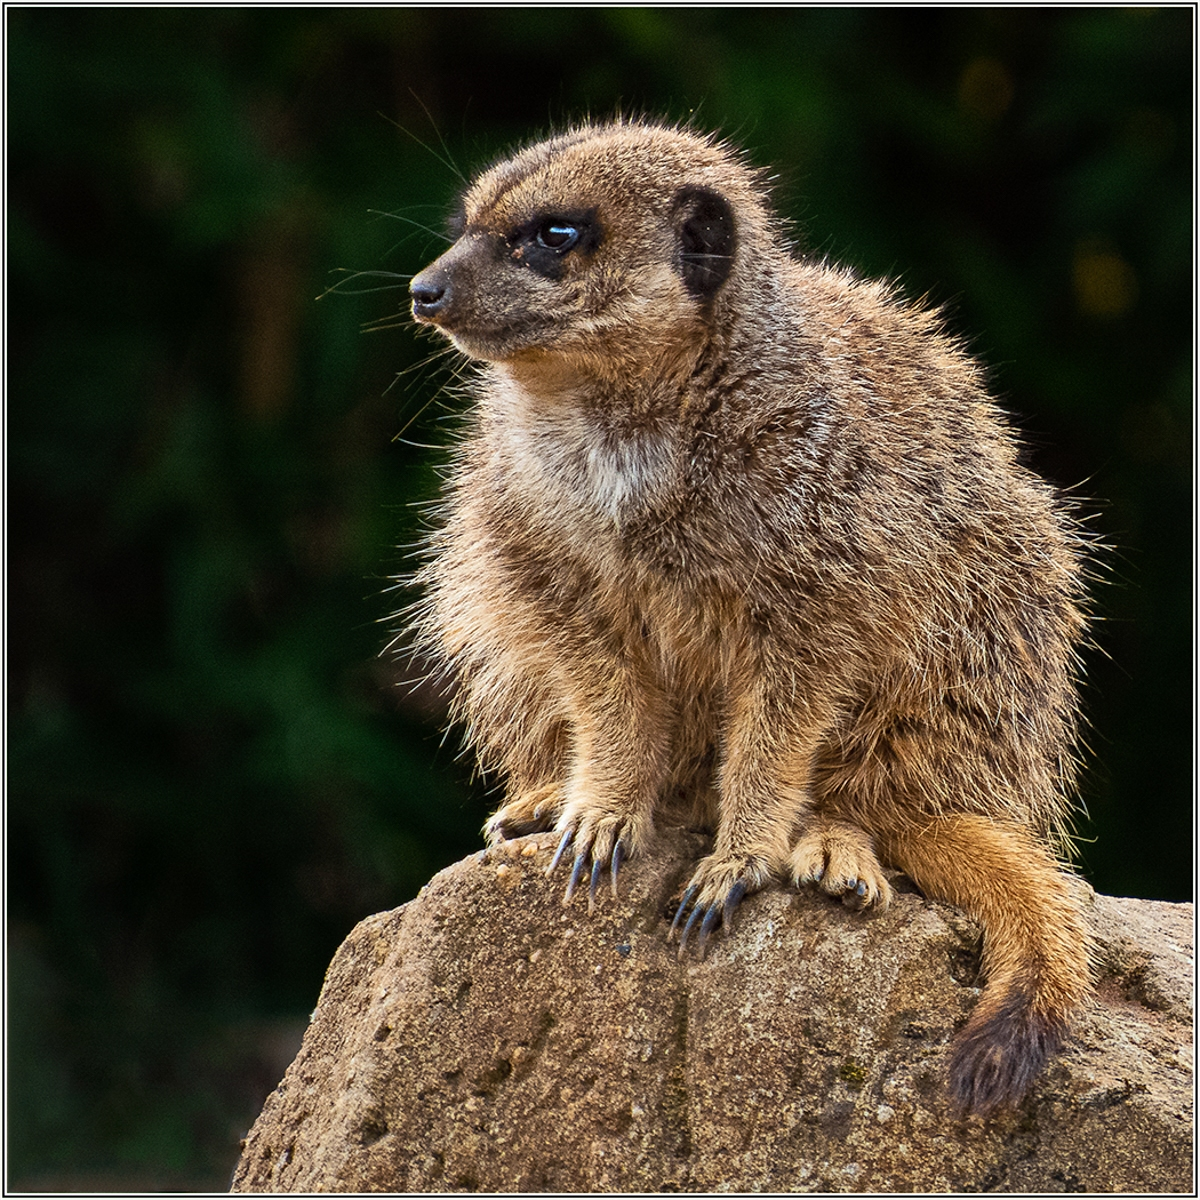 1st - Meercat by Martin Cassell